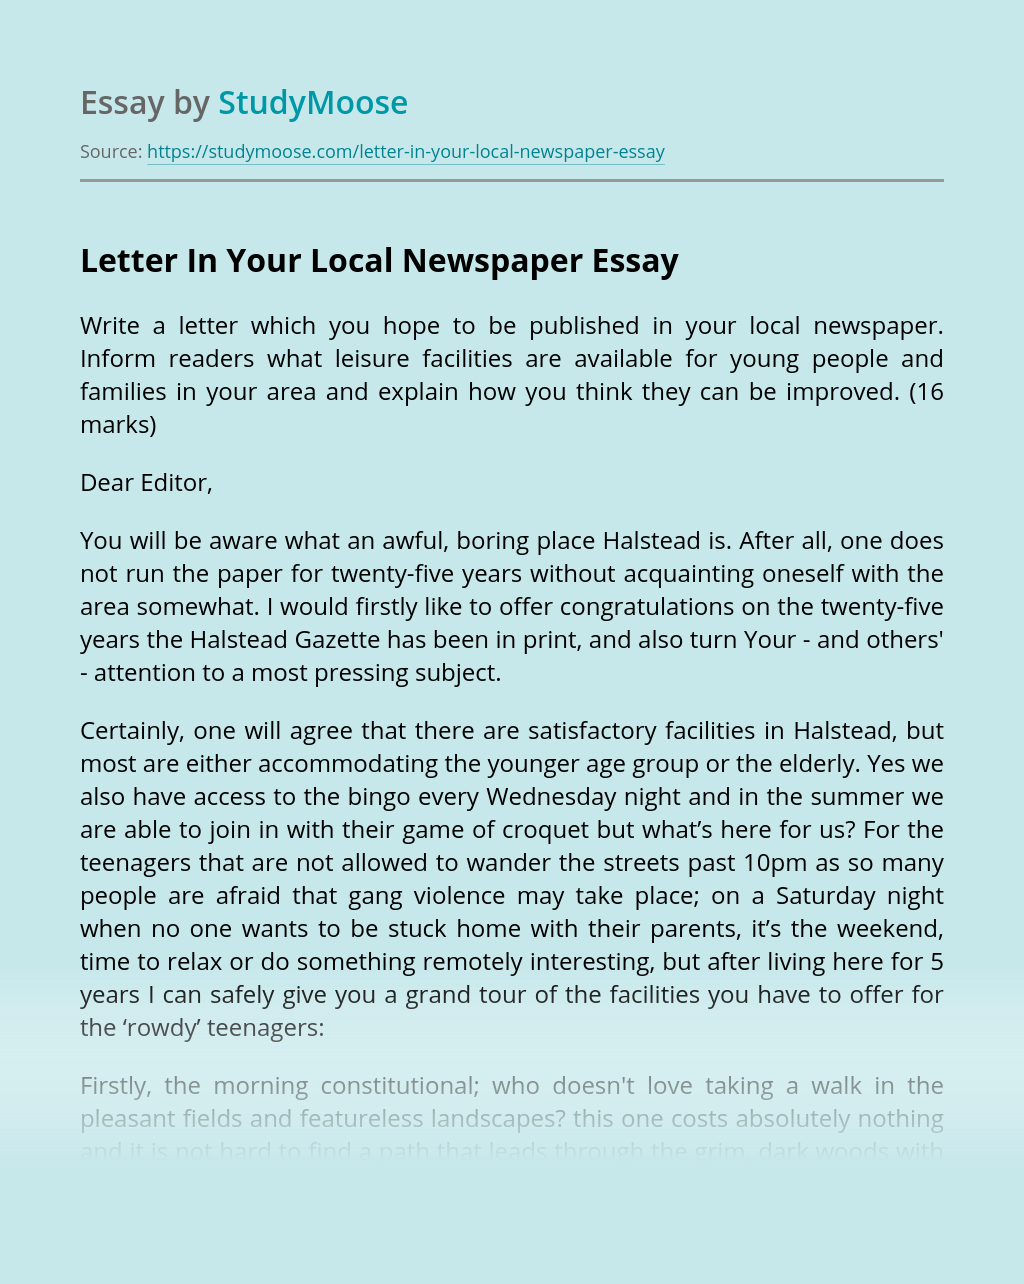 Letter In Your Local Newspaper